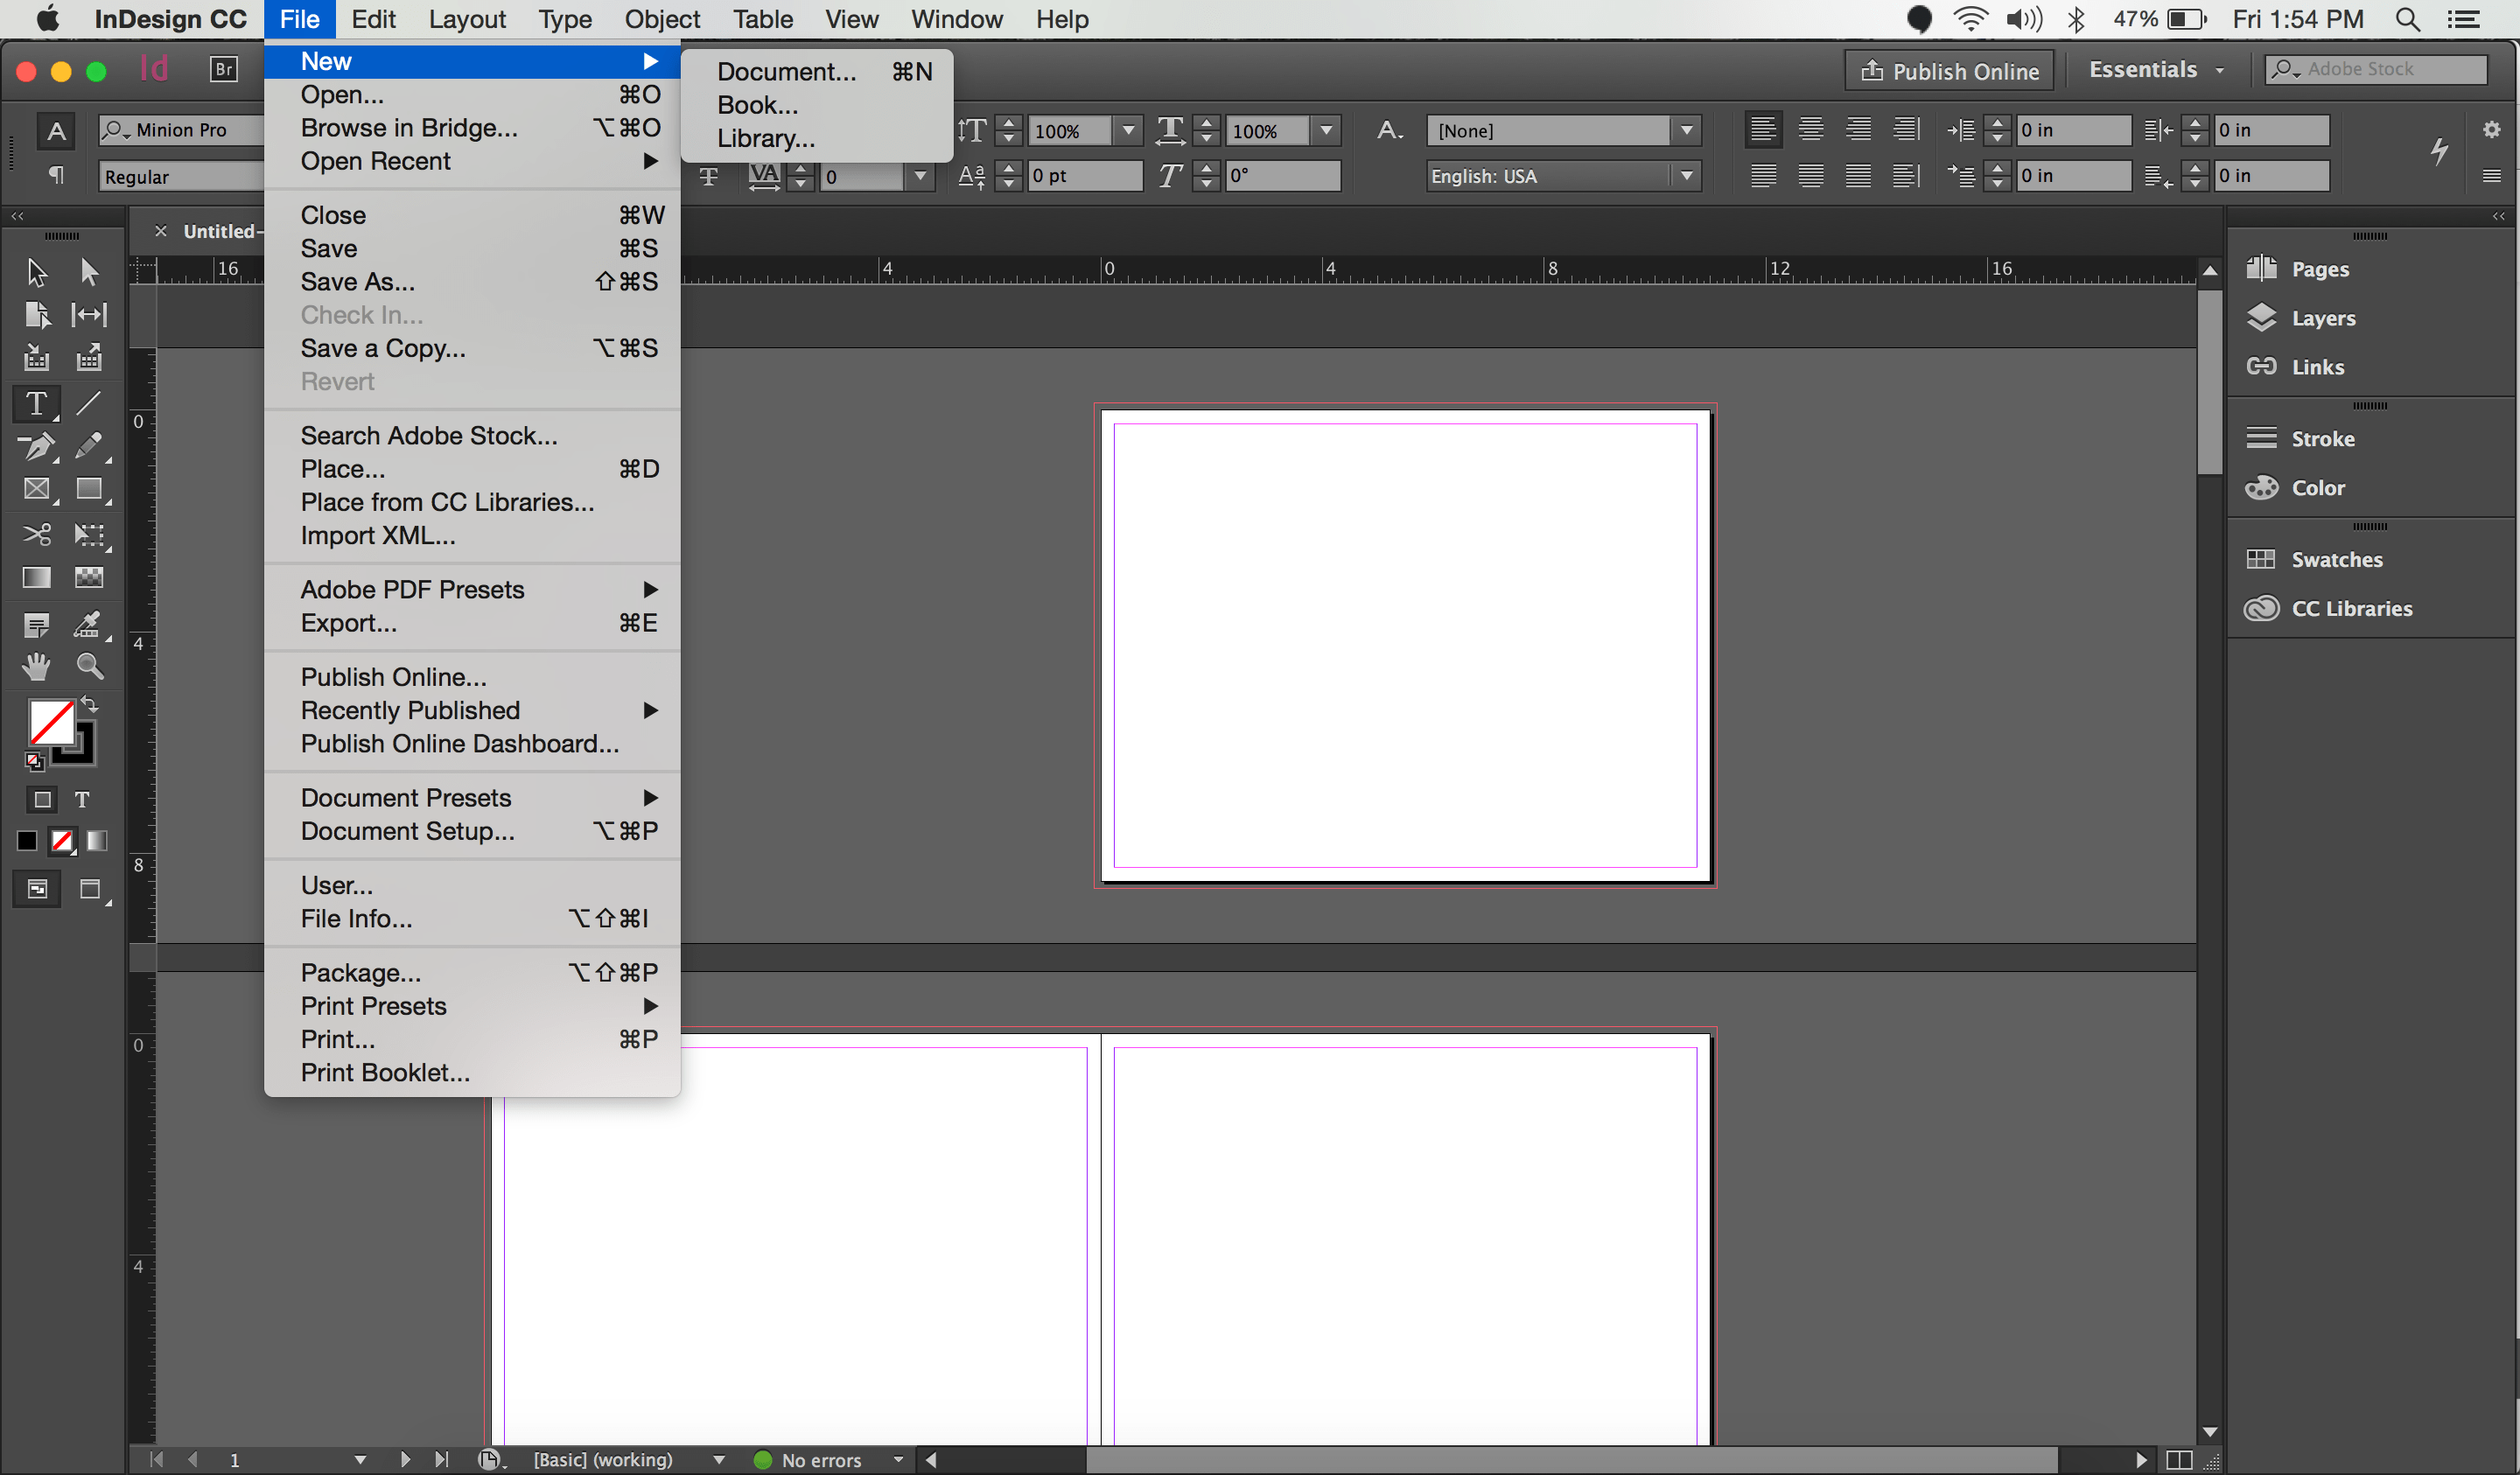 Screenshot of Creating a New Document in Indesign